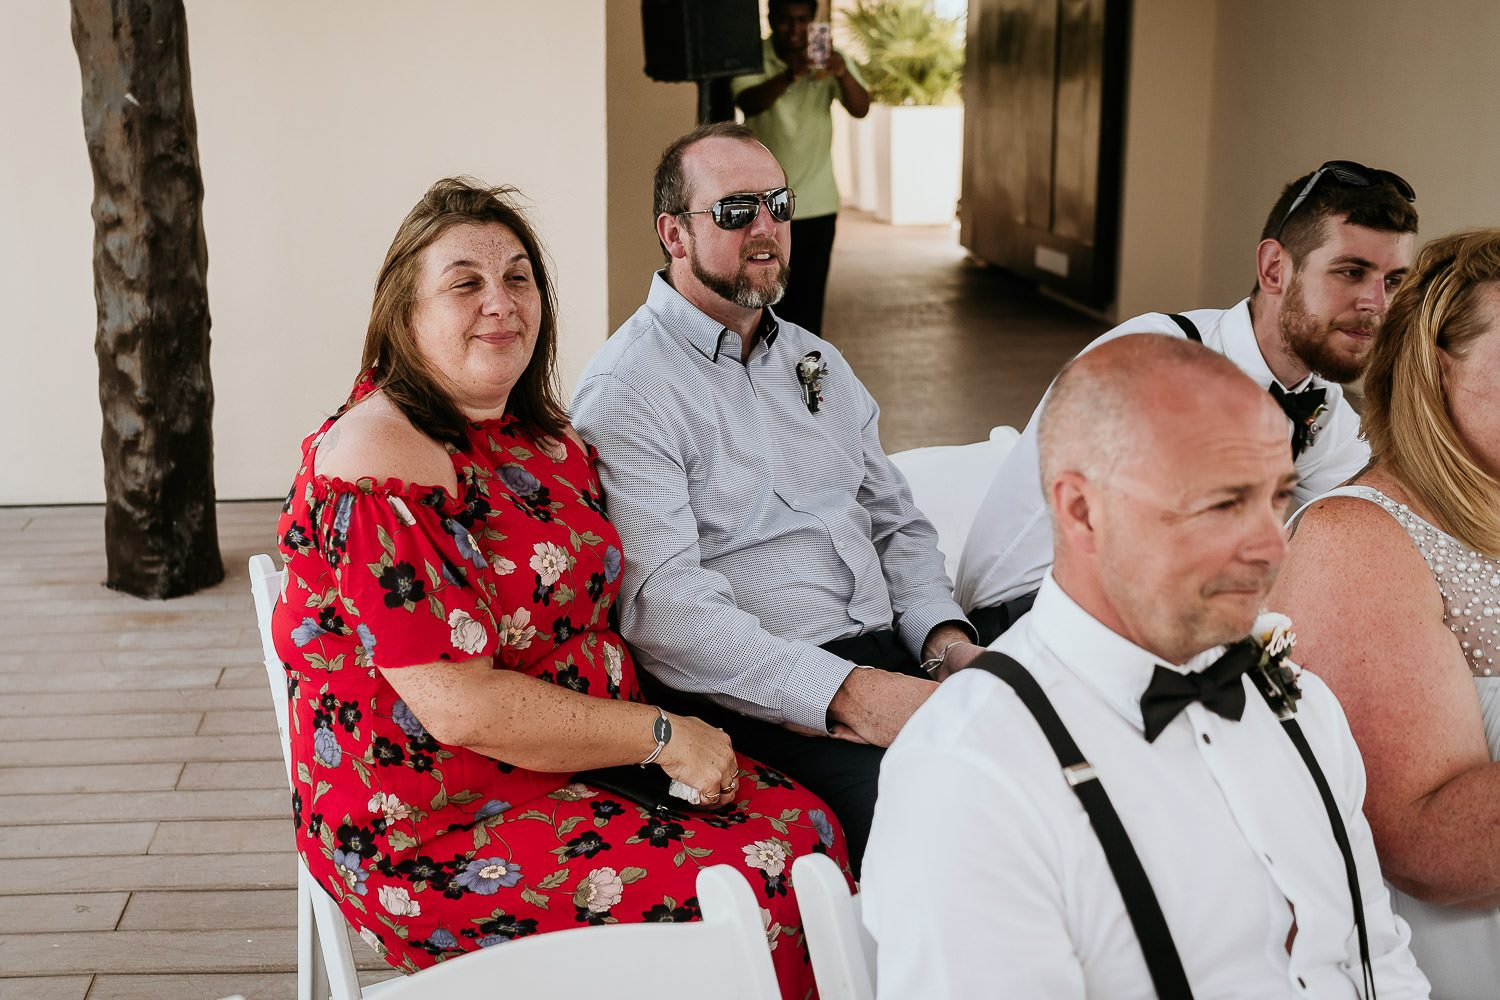 emotional wedding guests watching wedding ceremony